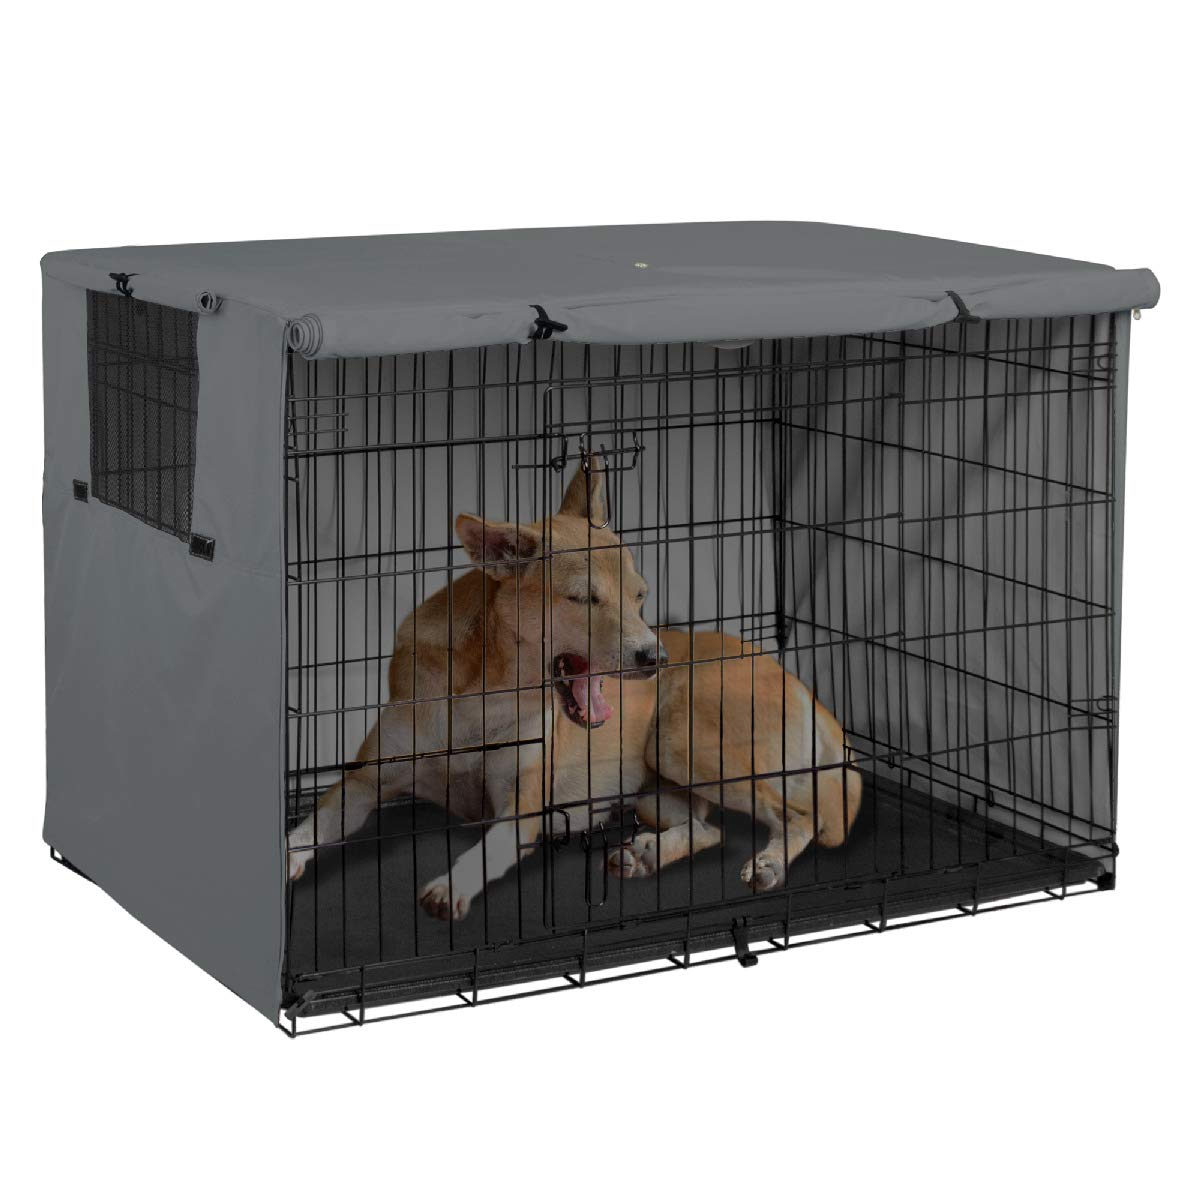 22 Inch, Tan Fits 24 30 36 42 48 inches Wire Crate HiCaptain Double Door Dog Crate Cover